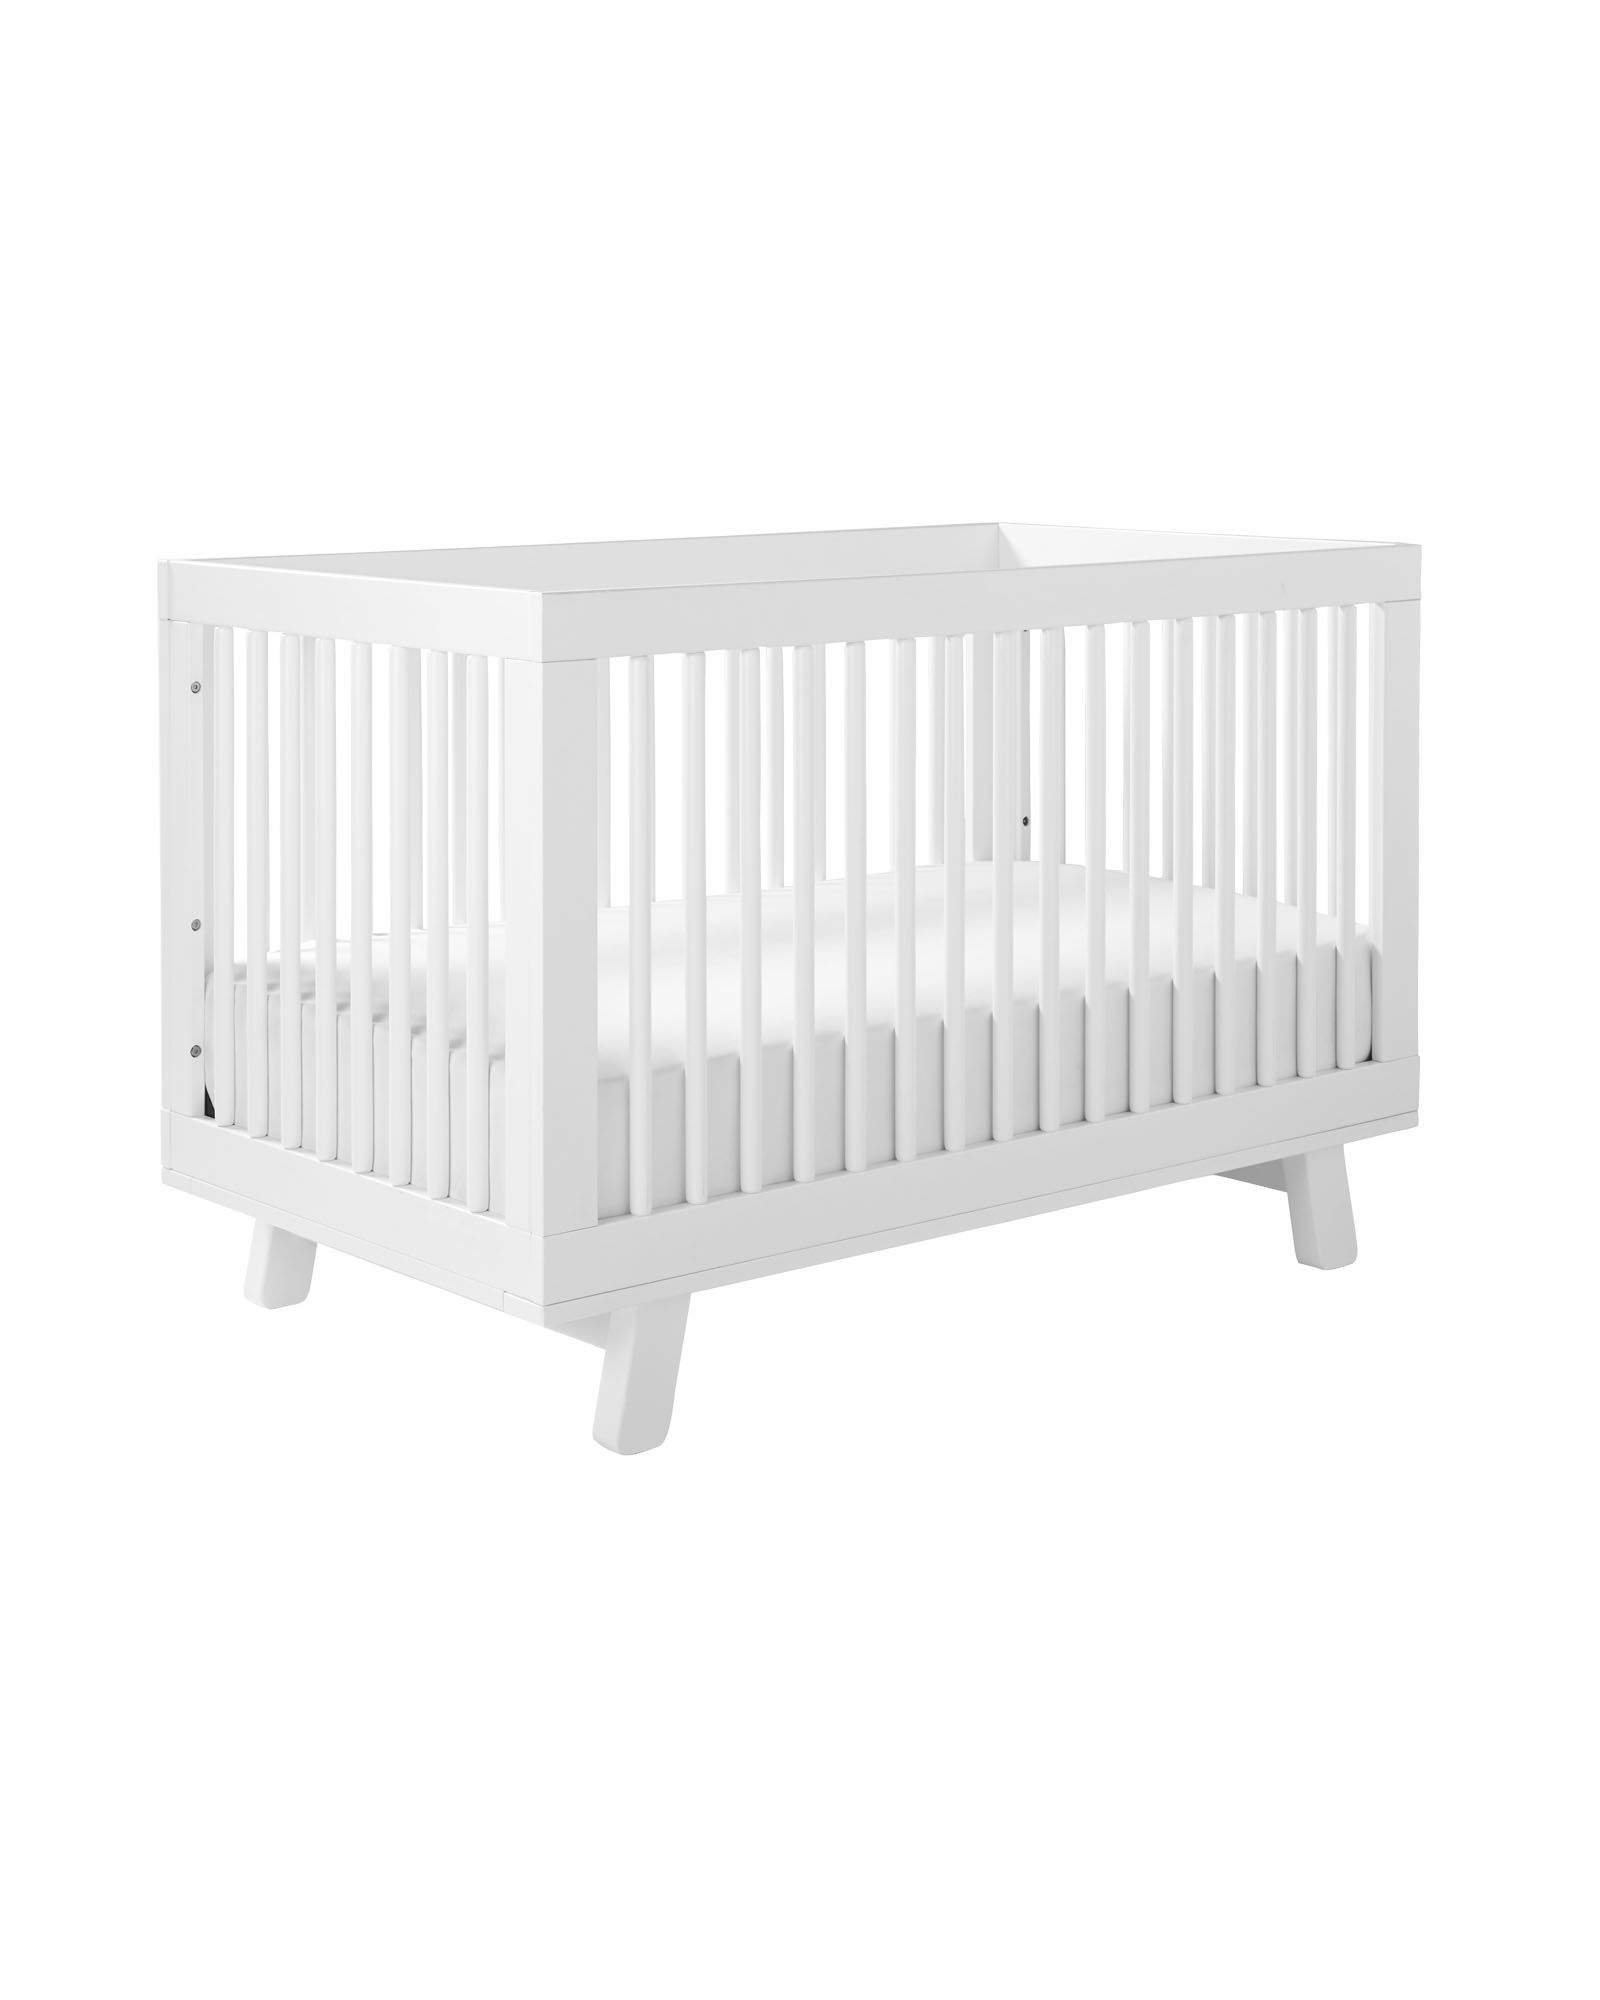 Alternatives to crib for babies - Super Simple And Sophisticated This Is A Nice Alternative To Traditional Crib Design The